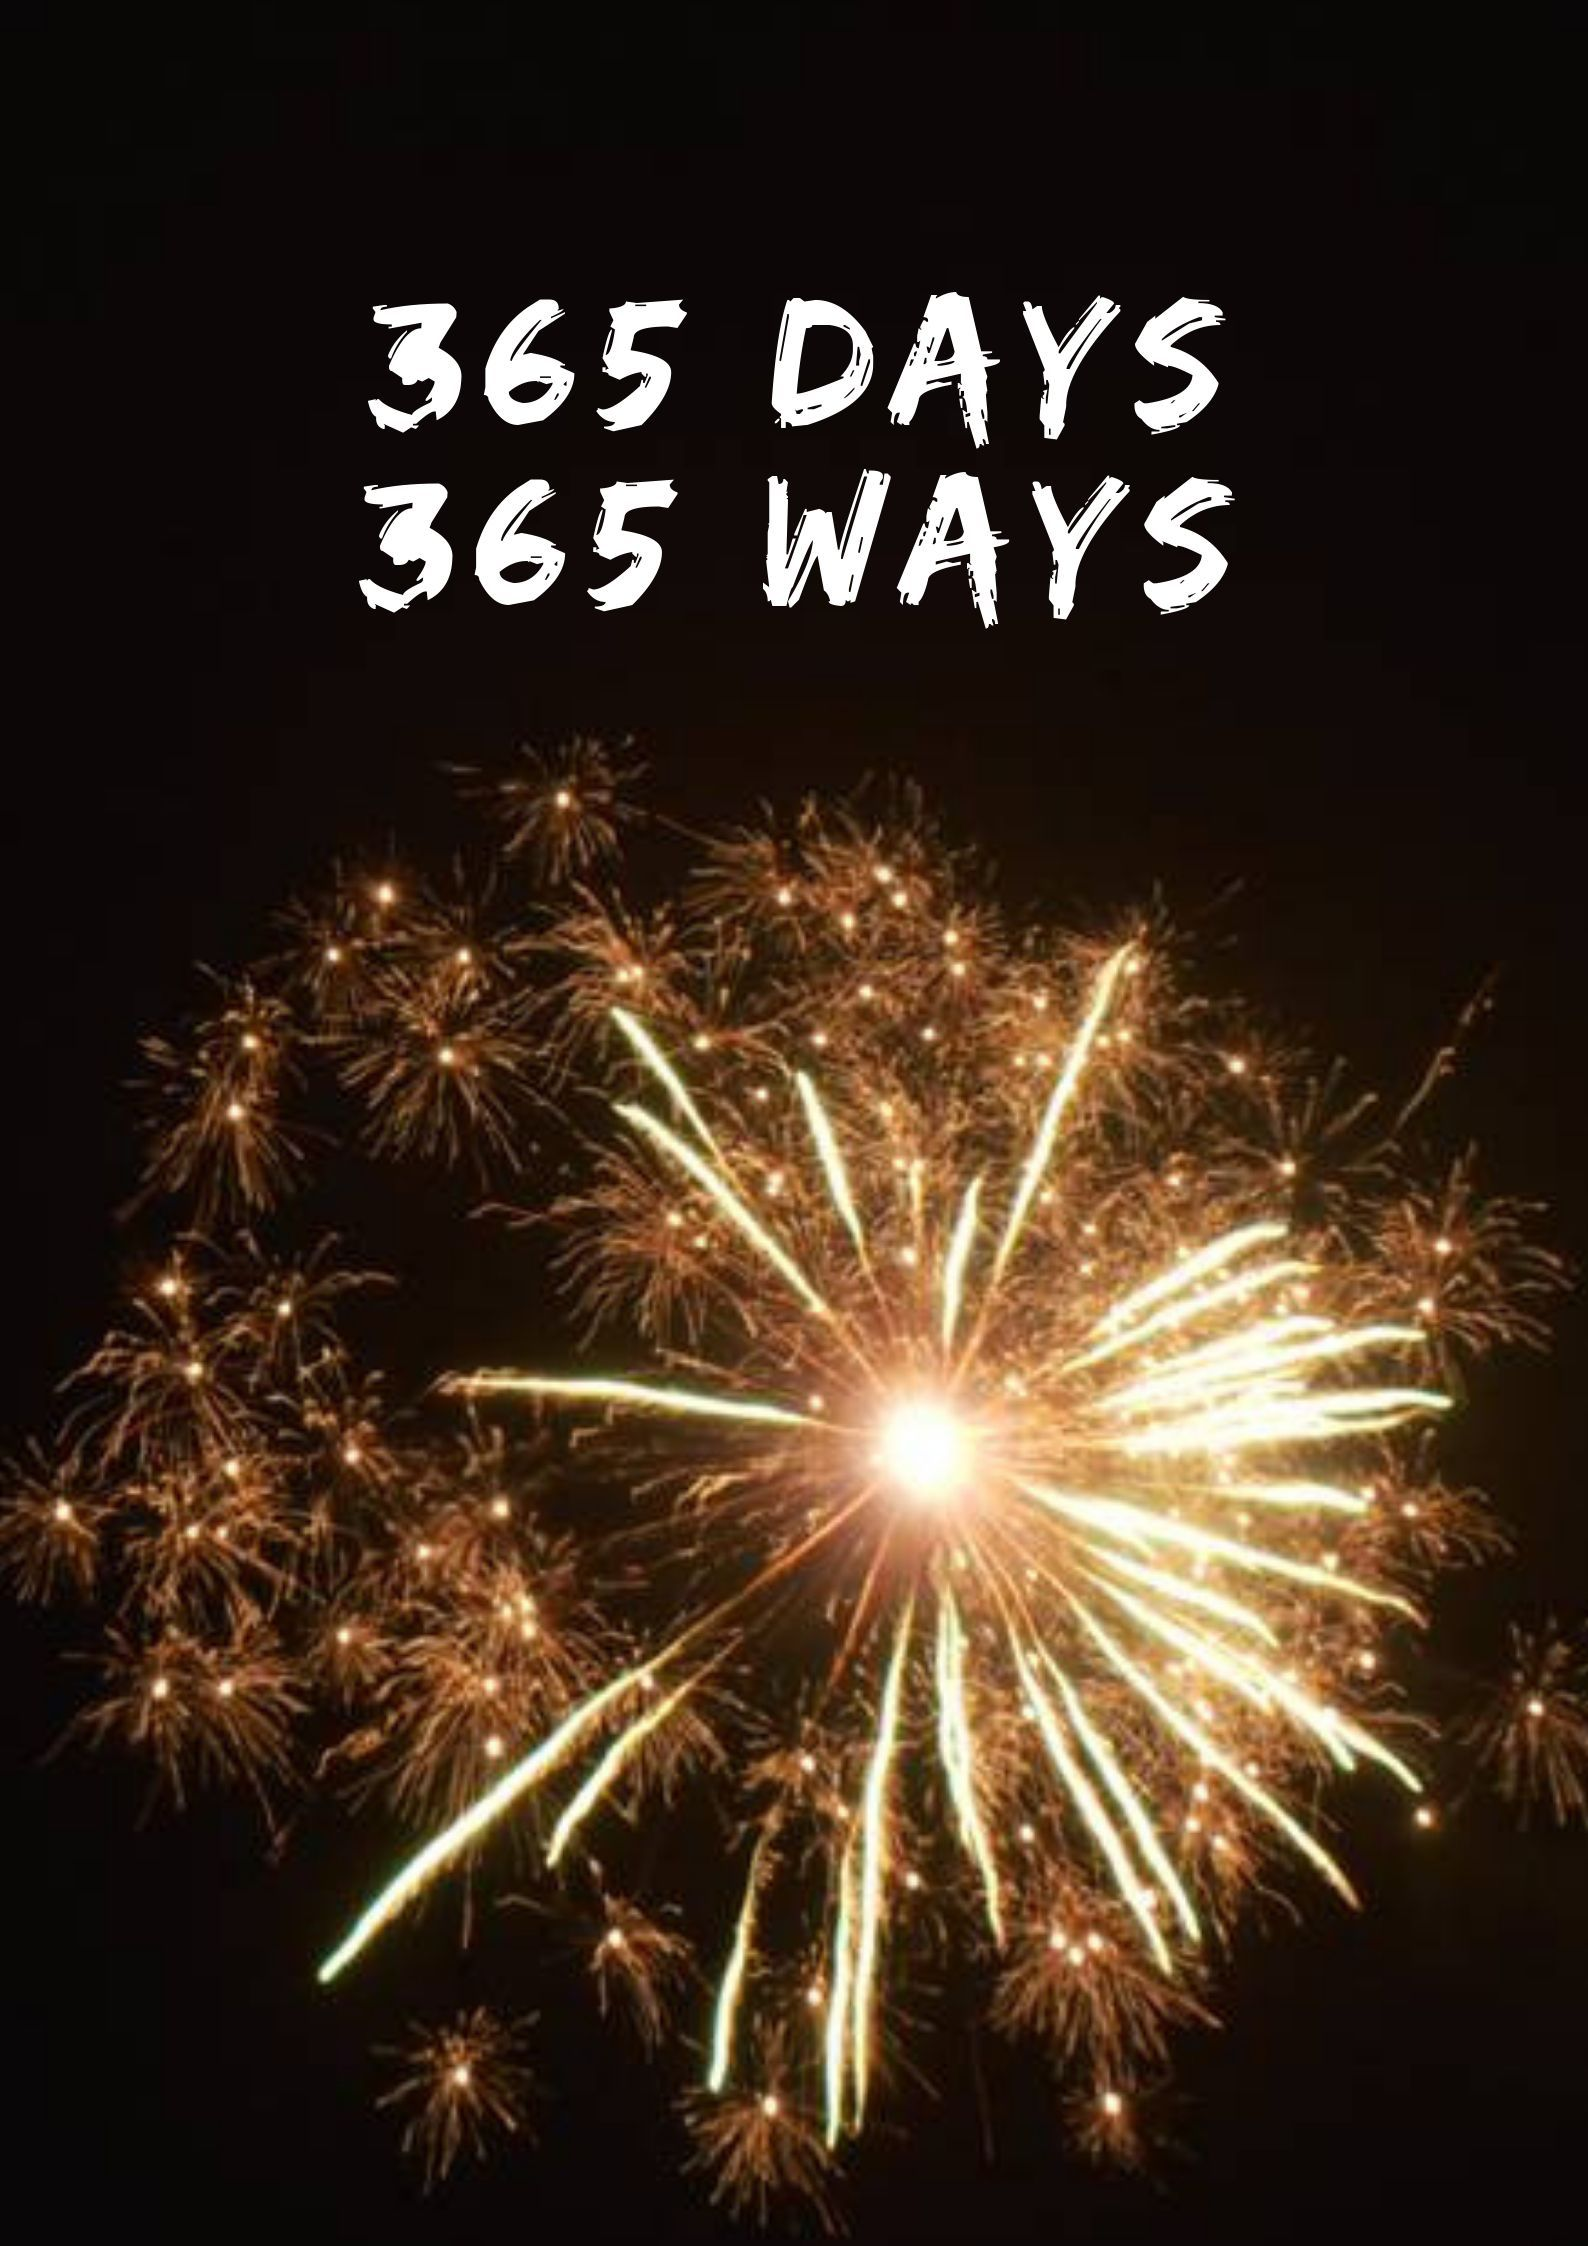 Happy New Years Eve Greetings 2020 Quotes For Friends And Family Quotes About New Year Happy New Year Quotes 2020 Happy New Year Quotes